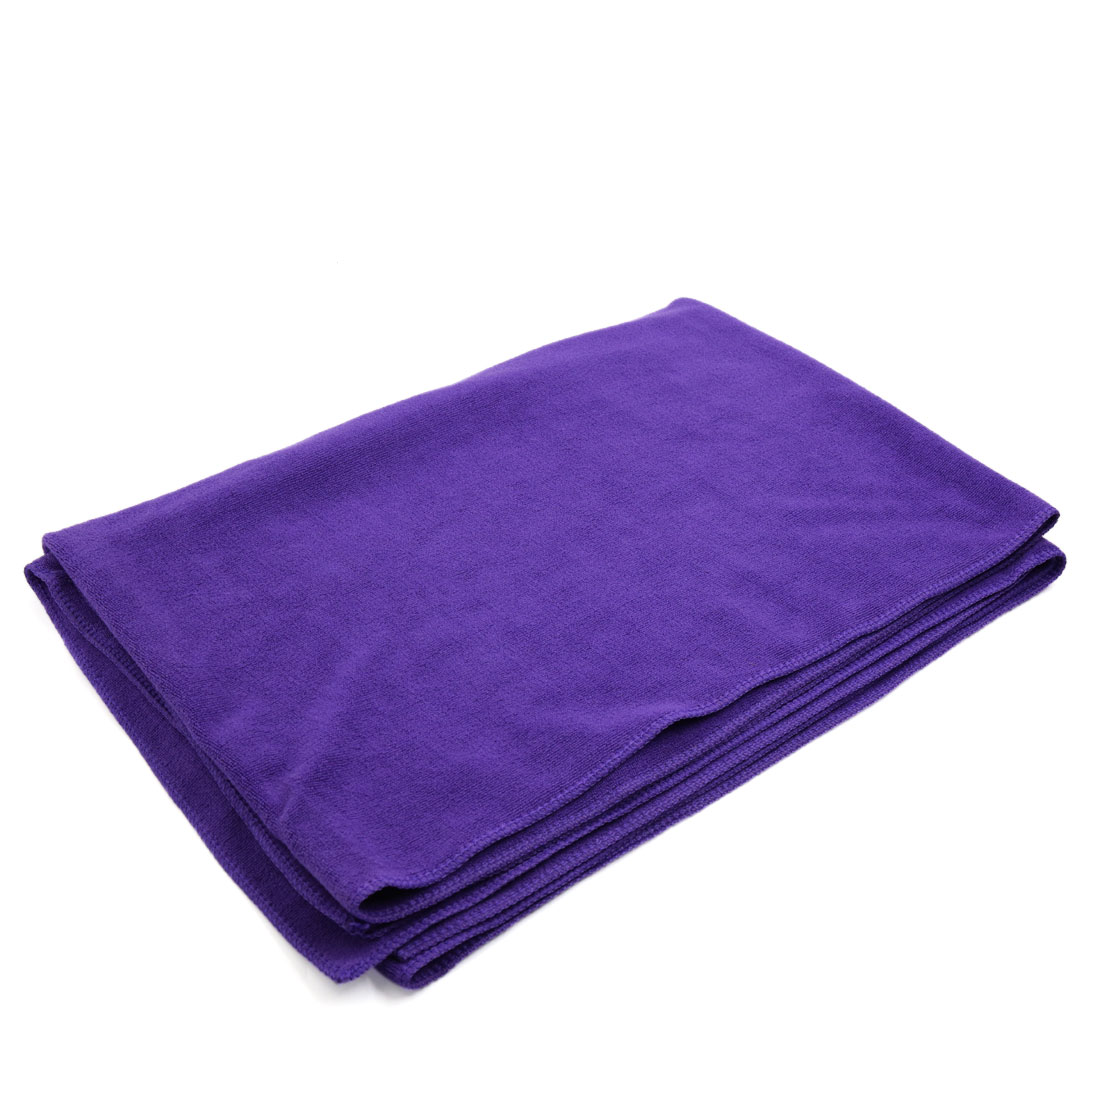 160cm x 60cm Purple Polishing Cleaning Washing Wipe Towel Cloth for Home Car - image 3 de 3